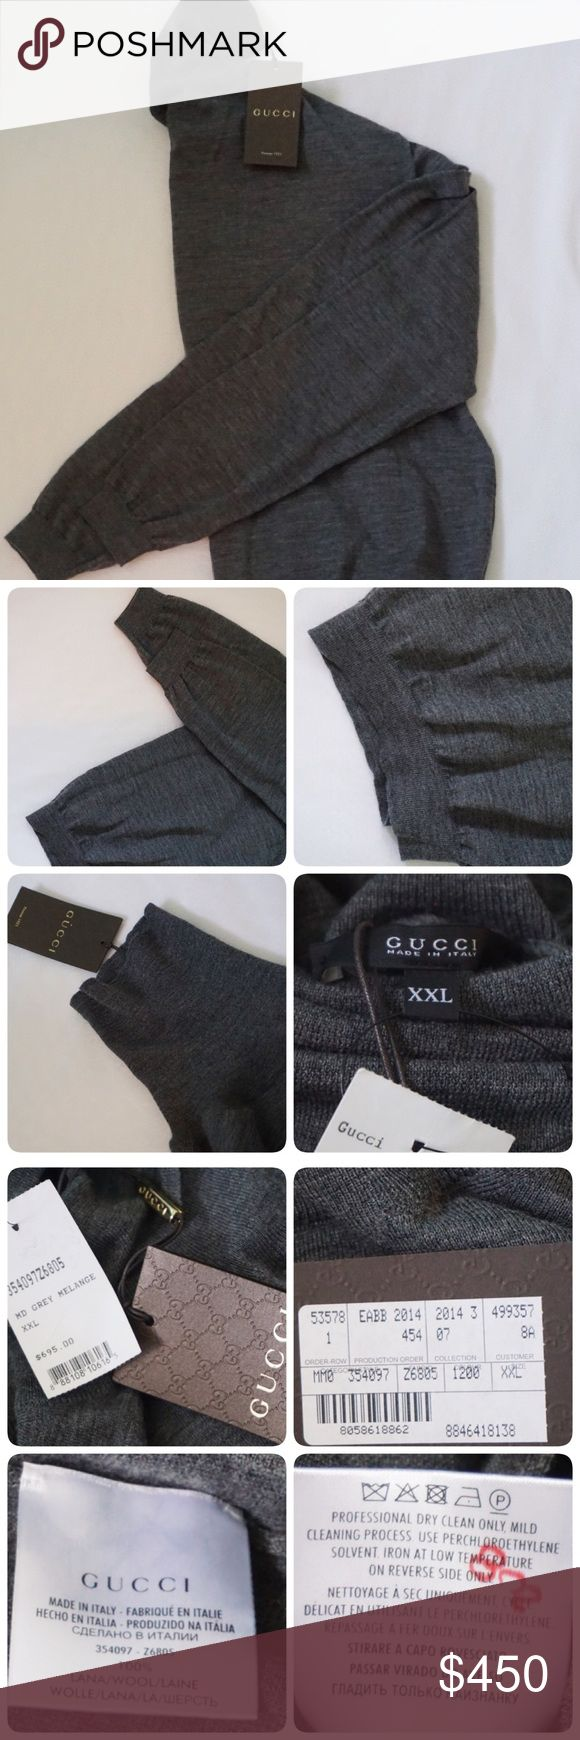 BRAND NEW GUCCI MEN TURTLENECK LONGSLEEVE SIZE XXL -BRAND NEW WITH TAG -SIZE: XXL (PLEASE KNOW YOUR SIZE!!!!!)⚠️⚠️ -COLOR: GREY -DESCRIPTION: 100% WOOL             ⚠️⚠️⚠️POSSIBLY WRINKLE FROM FOLDING⚠️⚠️⚠️⚠️⚠️    ⭐RATED SELLER  👍FAST SHIPPER NEXT DAY SHIPPING  ❌NO TRADE ❌NO PAYPAL ✅BUNDLE OFFER Gucci Sweaters Turtleneck